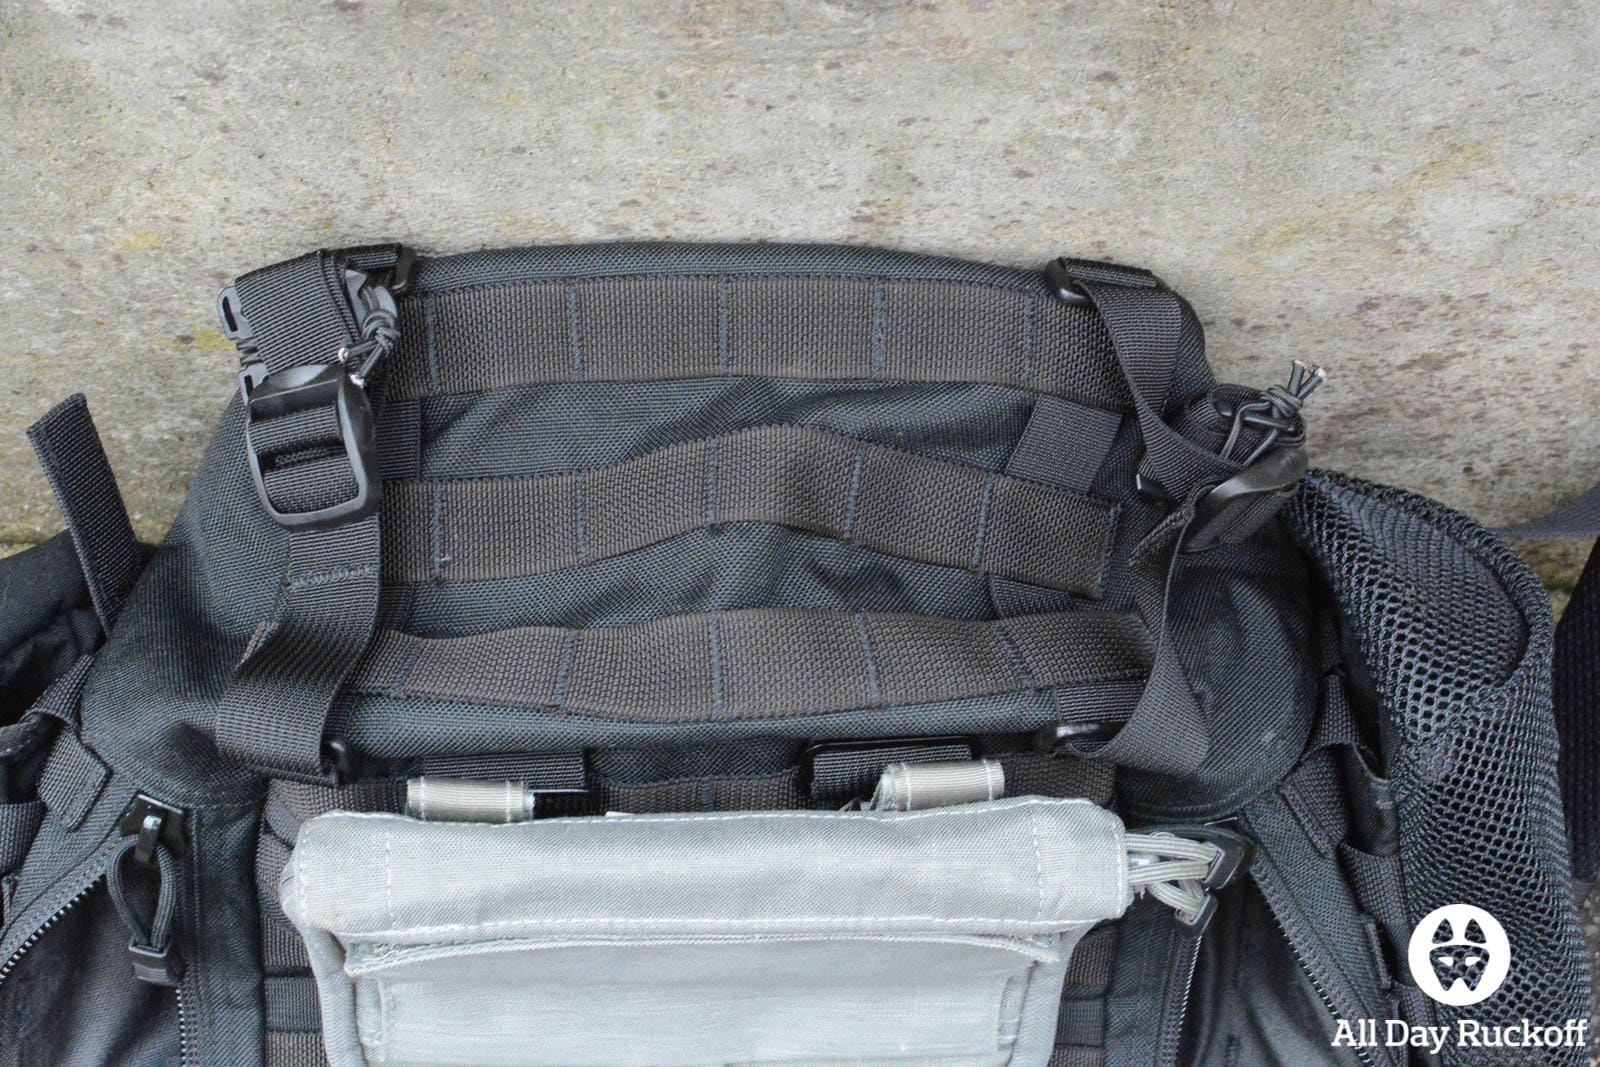 Triple Aught Design Litespeed Review - Bottom MOLLE